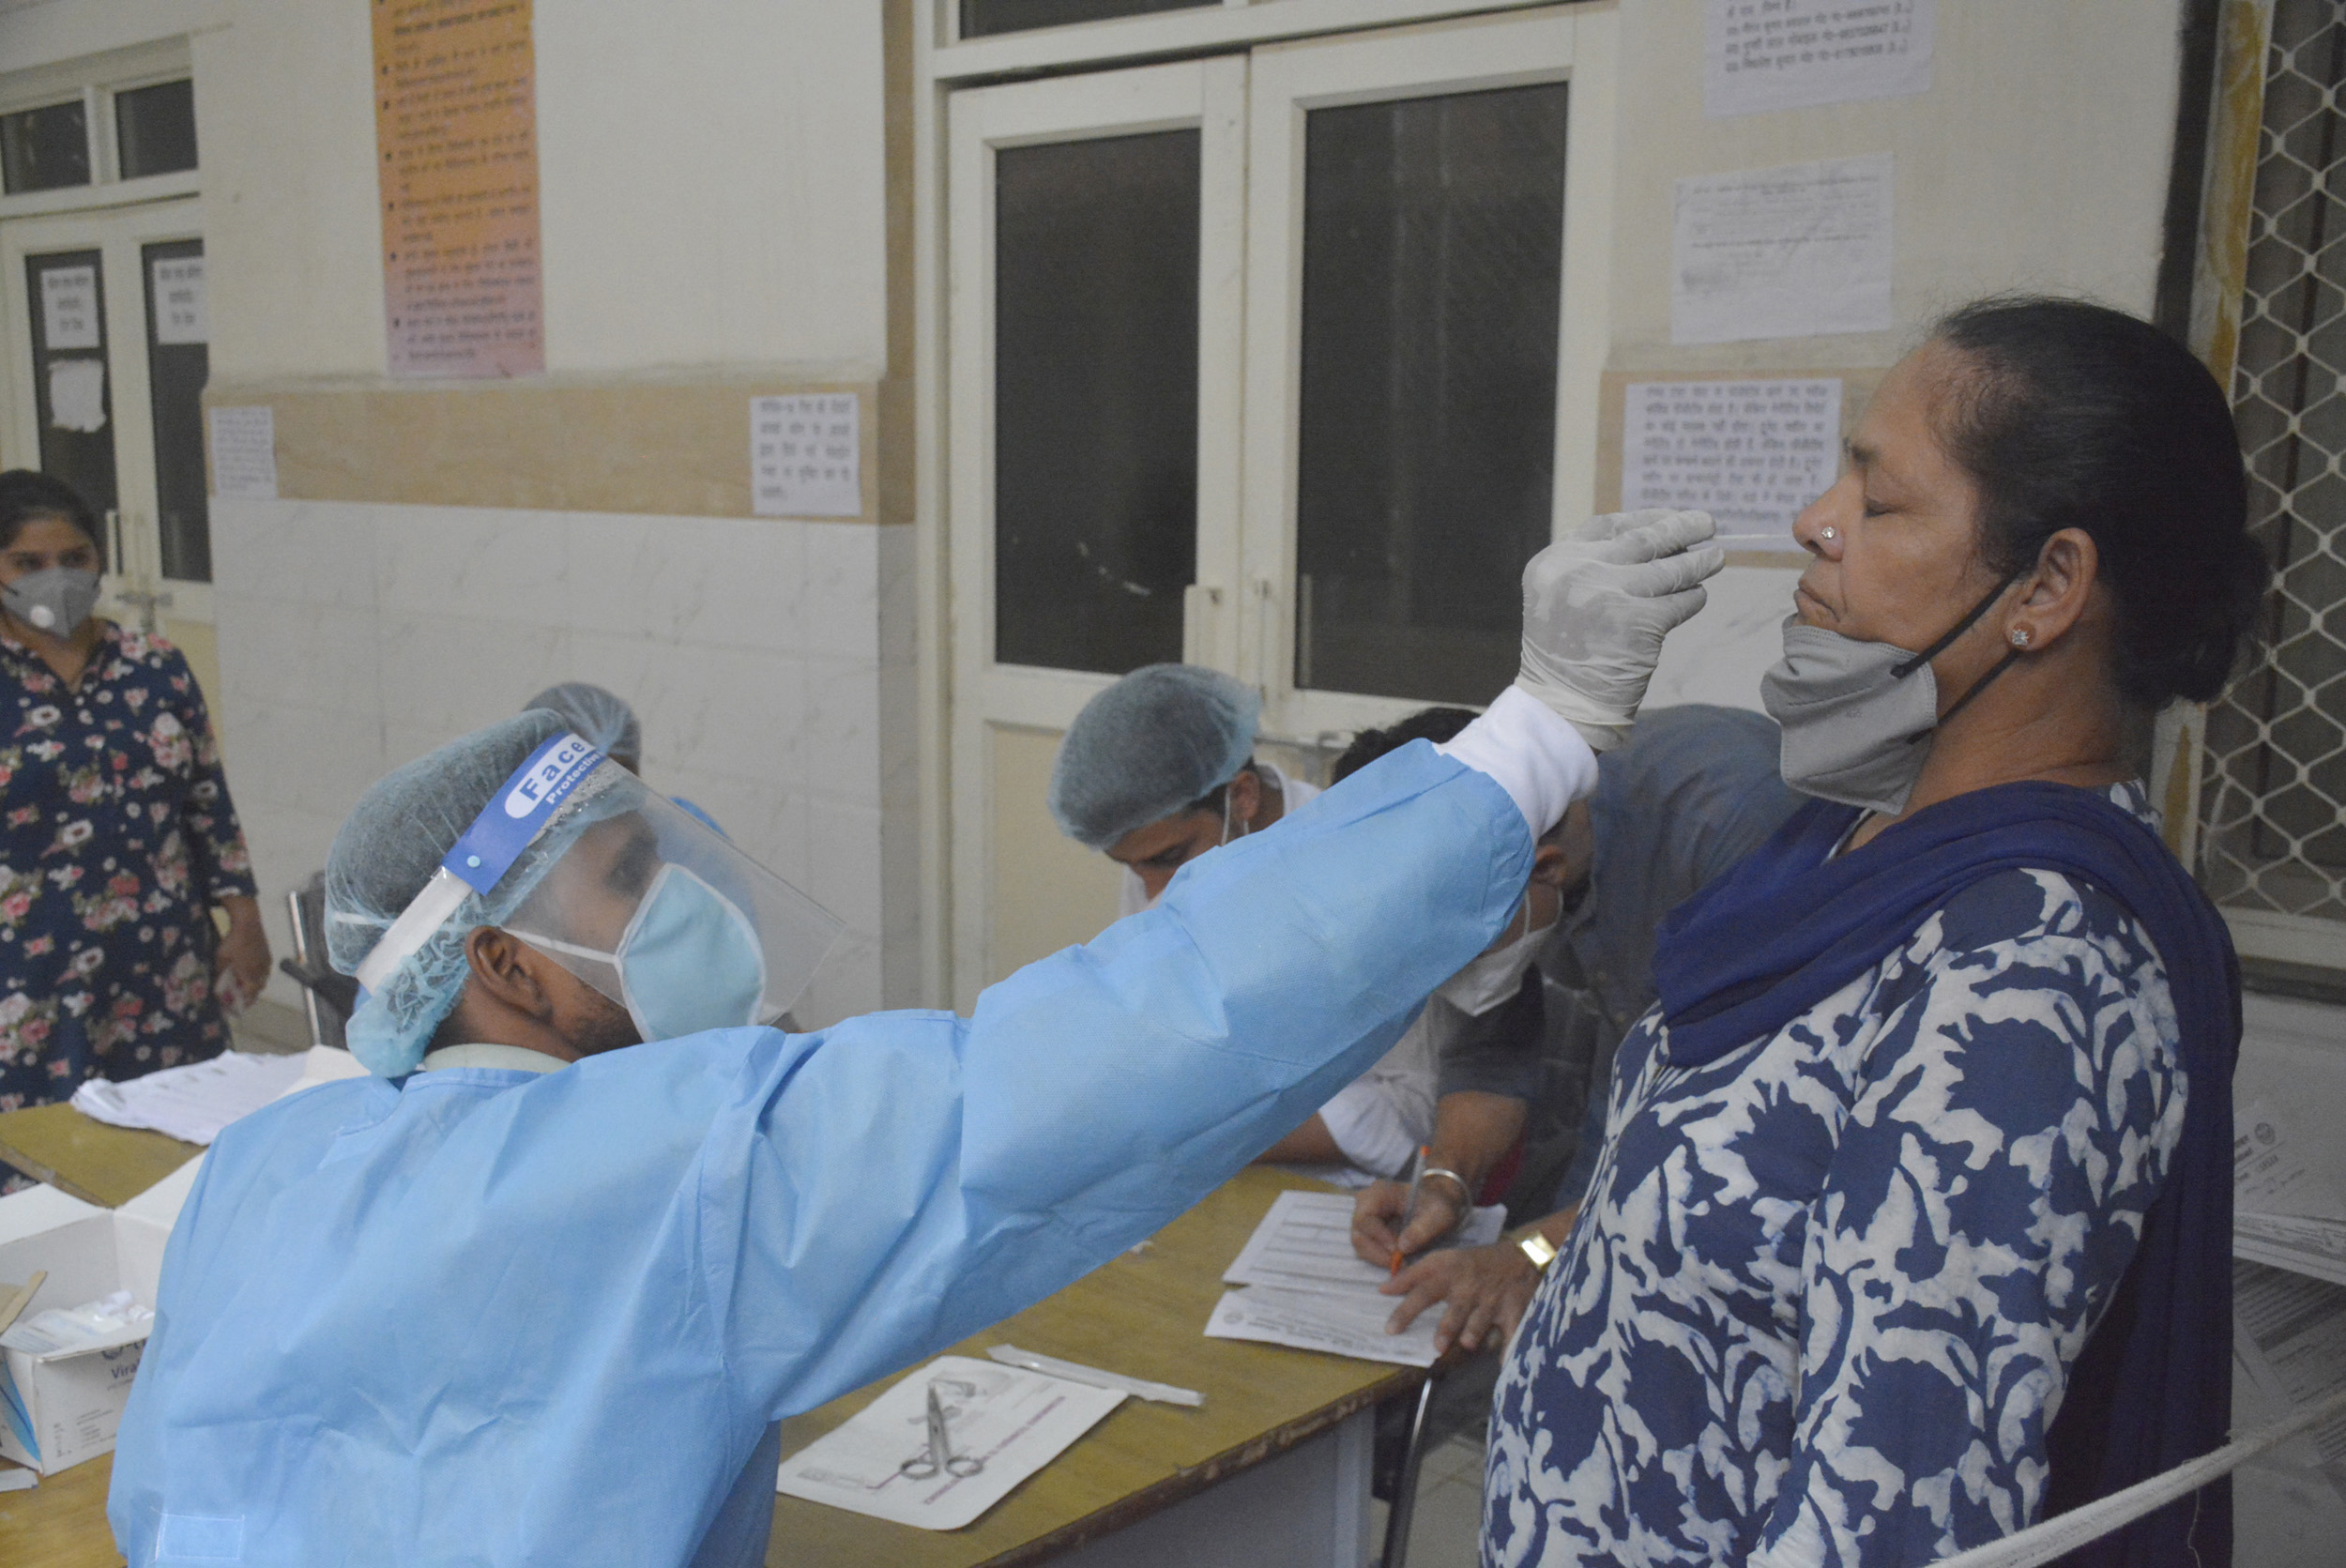 A medical professional collects swab sample to test for Covid-19 infection, at MMG hospital, on July 11, in Ghaziabad, India.